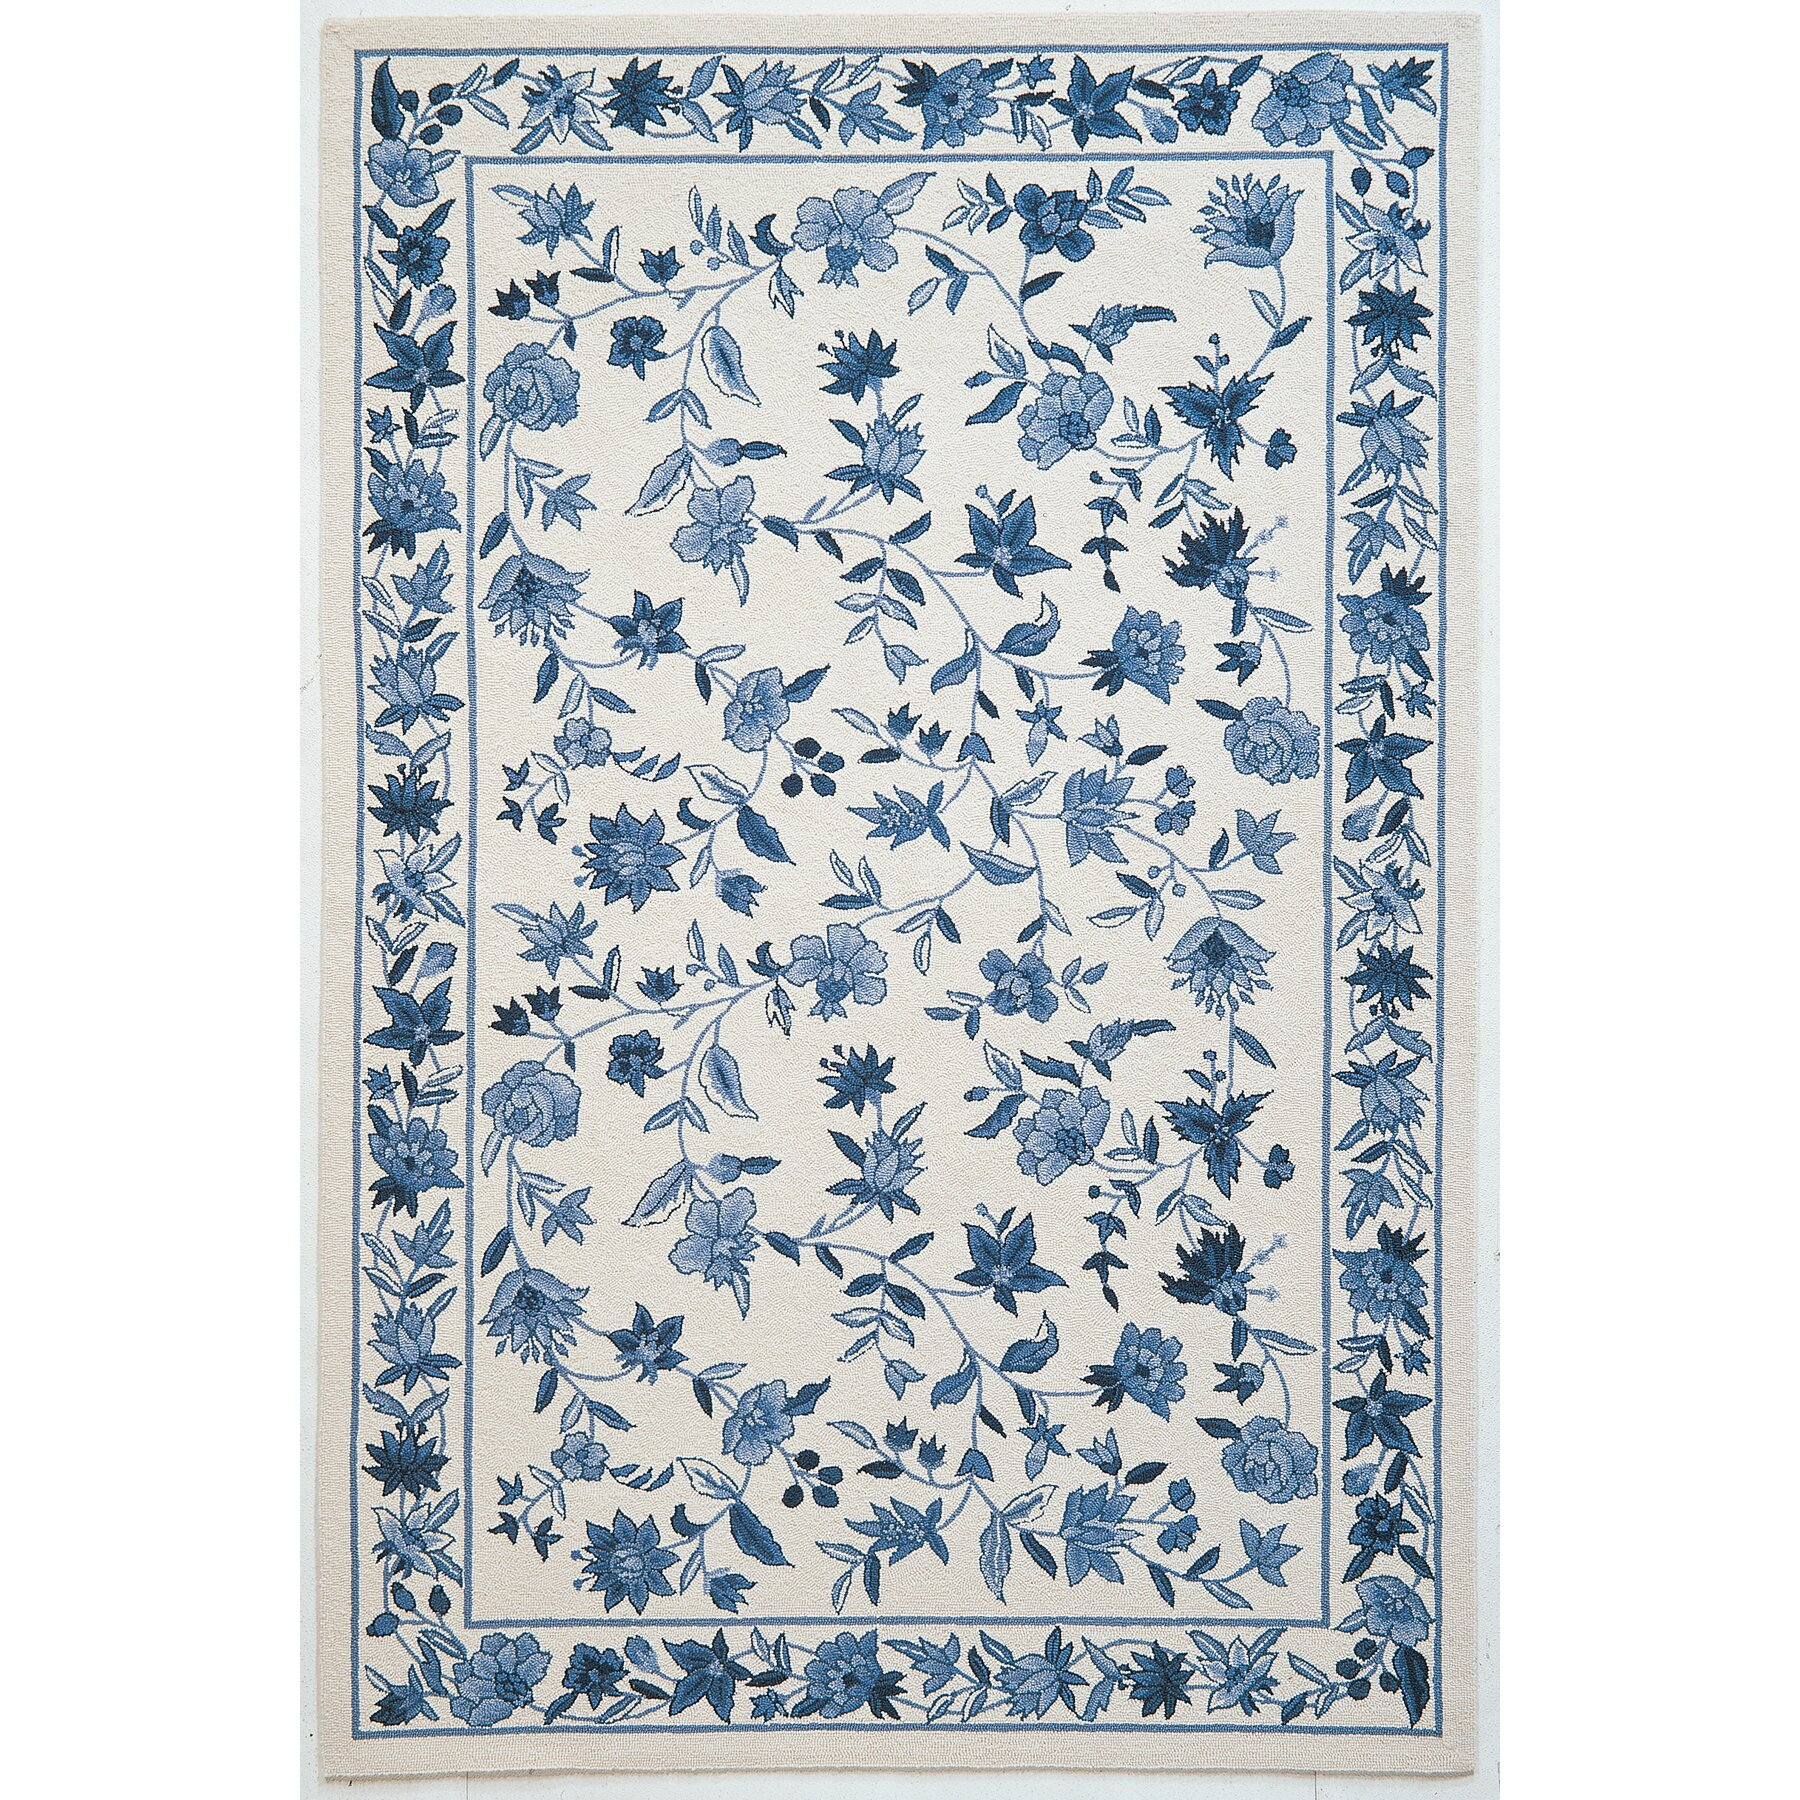 Blue And White Chinese Rugs: KAS Rugs Colonial Ivory/Blue Floral Area Rug & Reviews